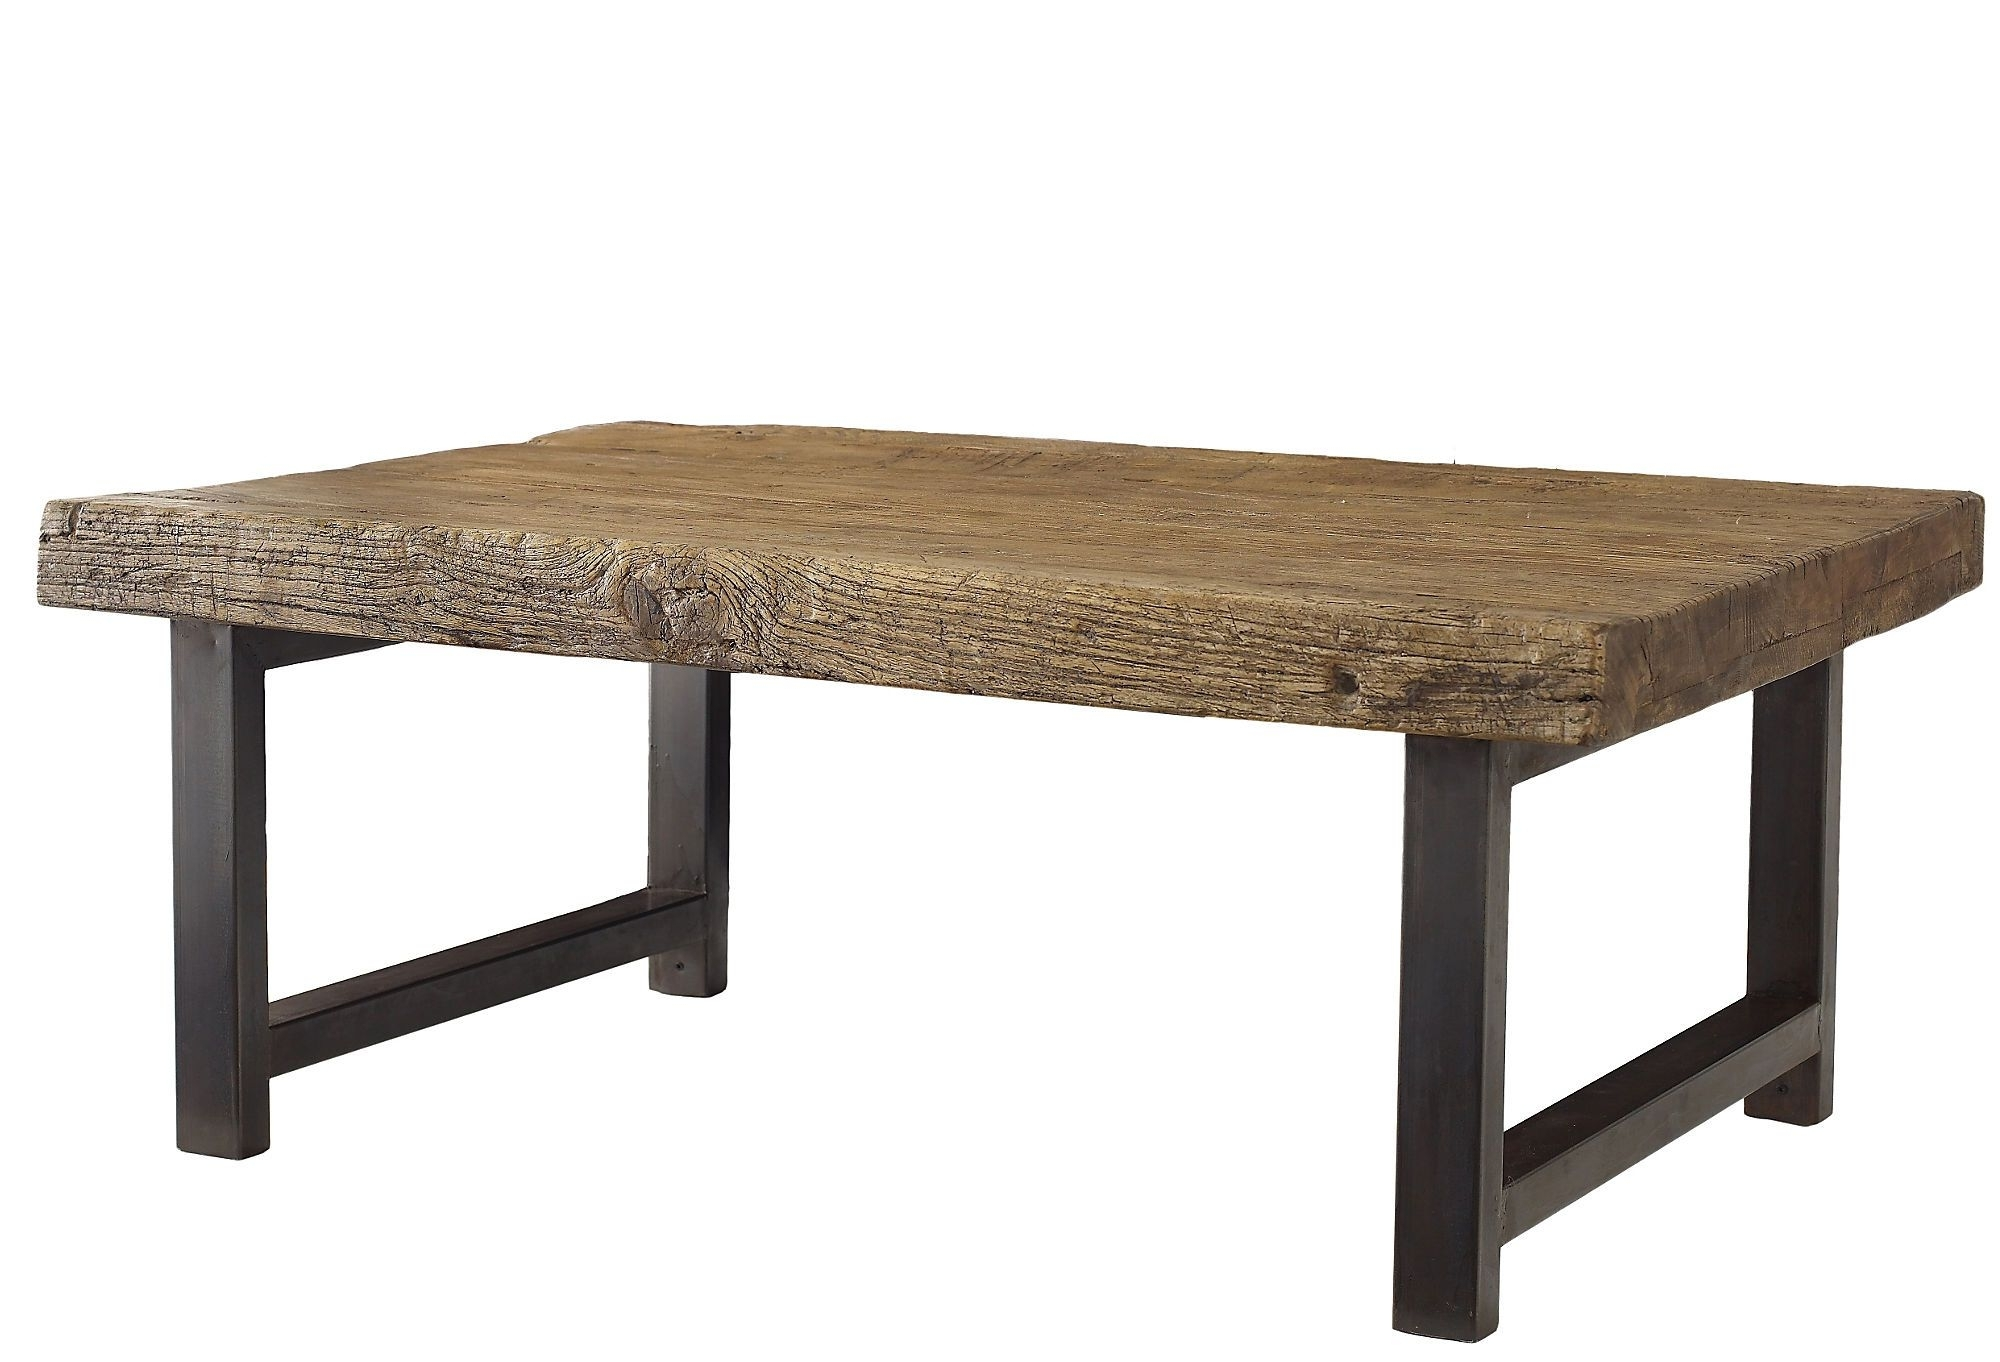 Well Known Reclaimed Elm Iron Coffee Tables Regarding Weathered To Rustic Perfection, This Reclaimed Elm And Steel Table (View 9 of 20)